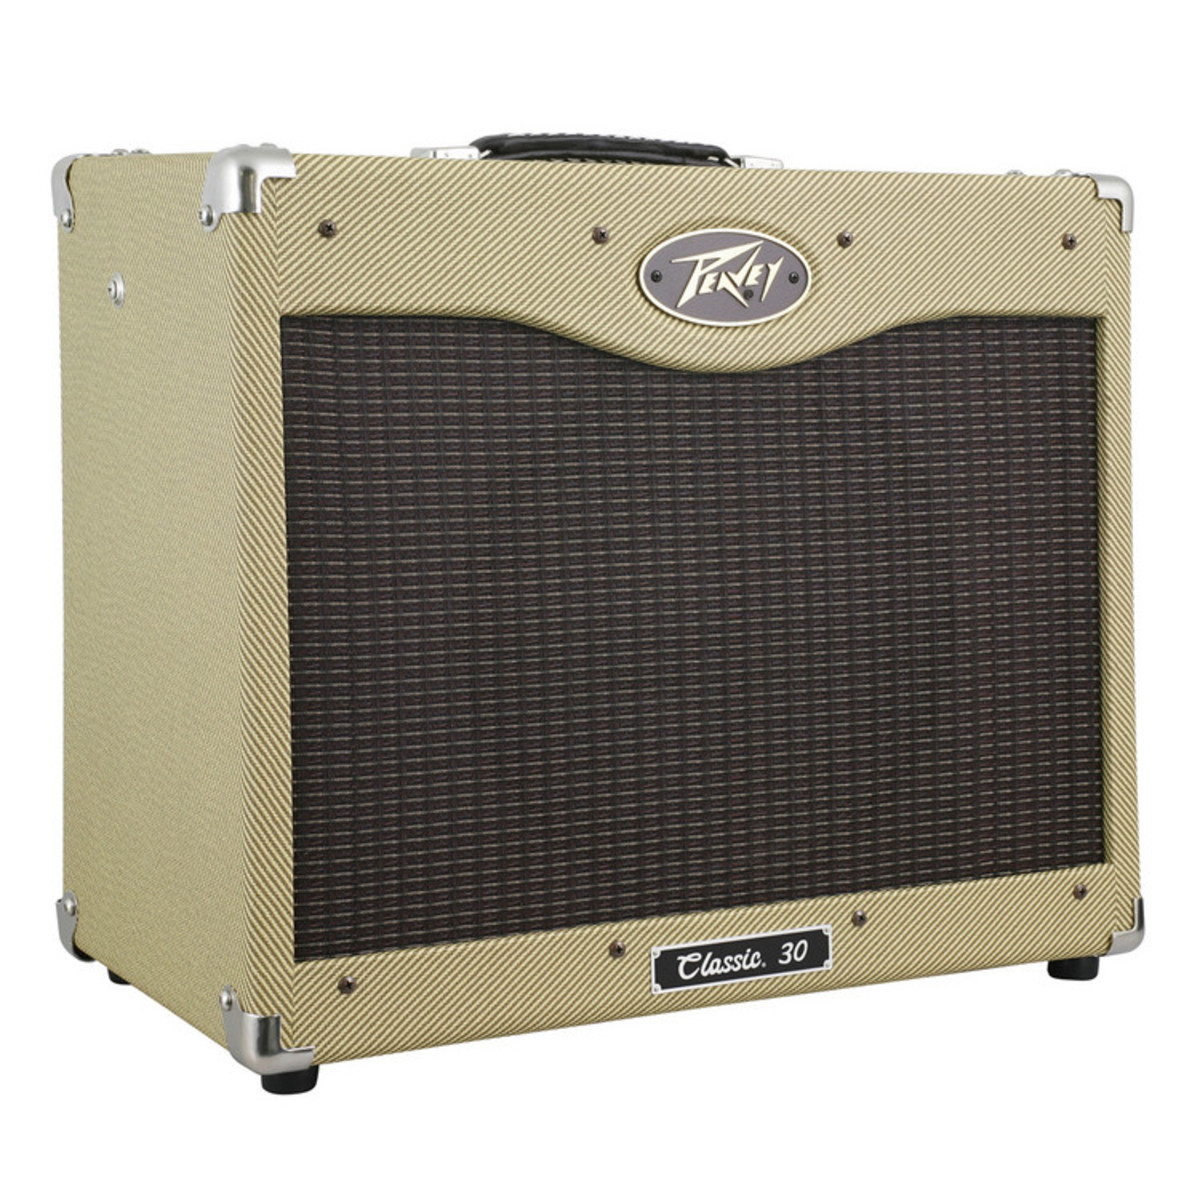 Peavey Classic 30 112 Guitar Amp Tweed At